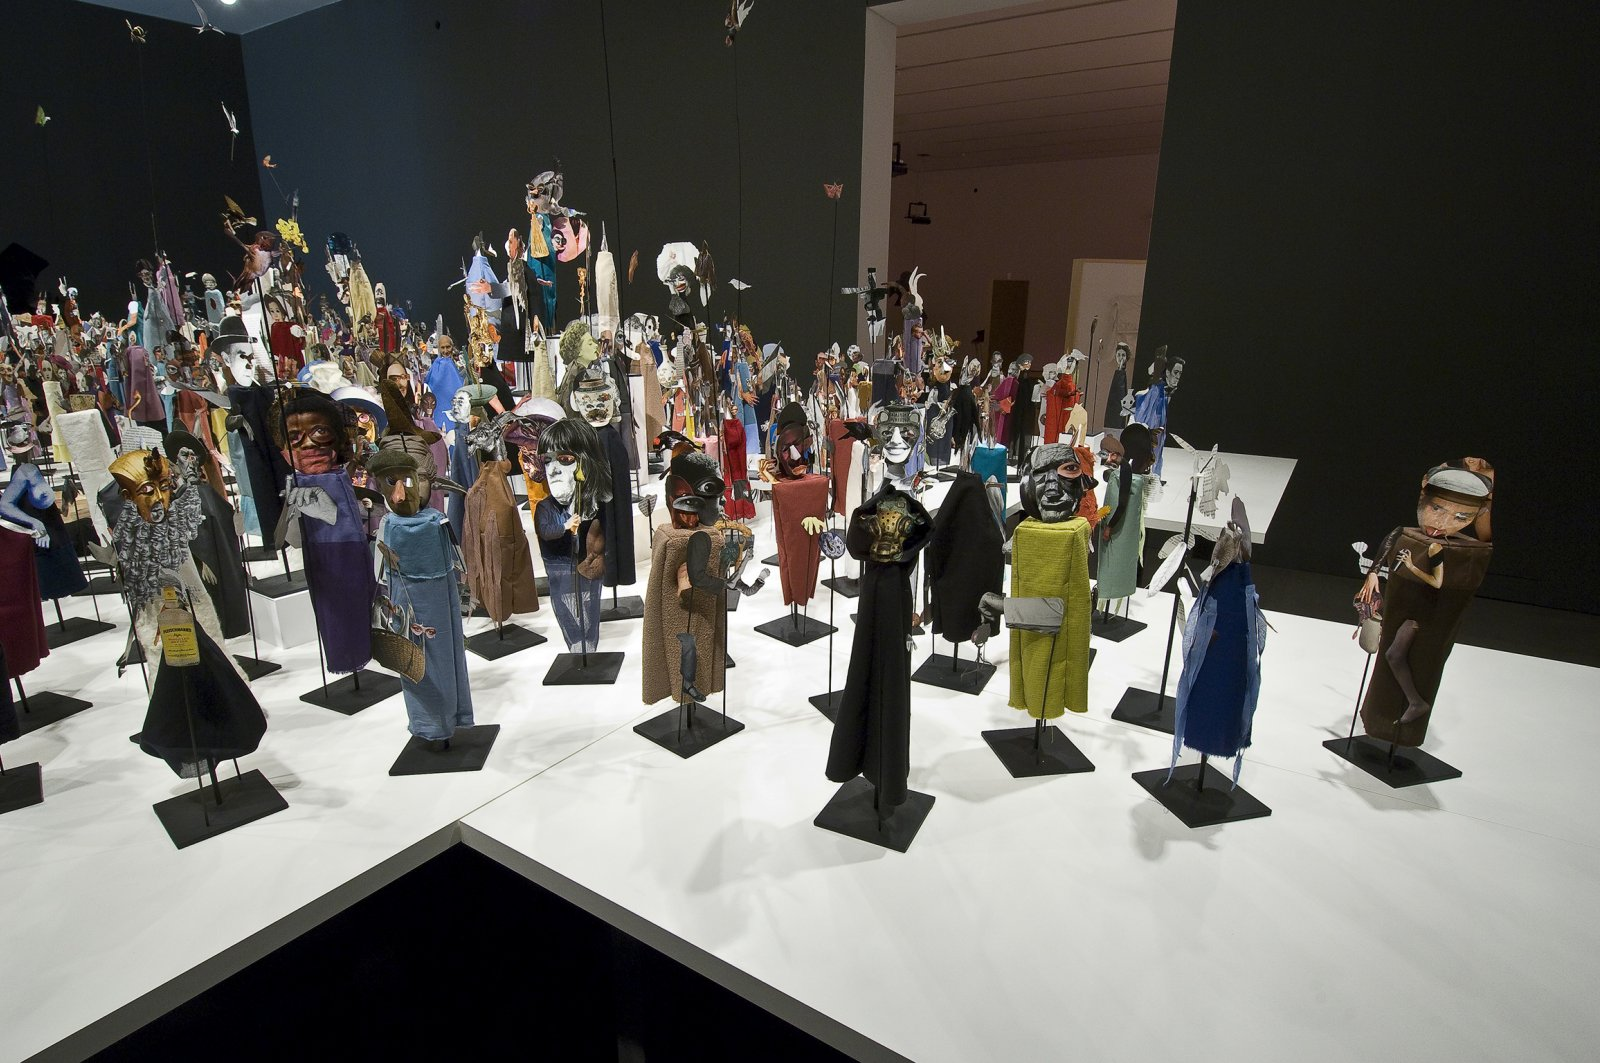 Geoffrey Farmer,The Surgeon and the Photographer, 2009, paper, textile, wood, and metal, 365 figures, dimensions variable. Installation view,Nomads, National Gallery of Canada, Toronto, 2009